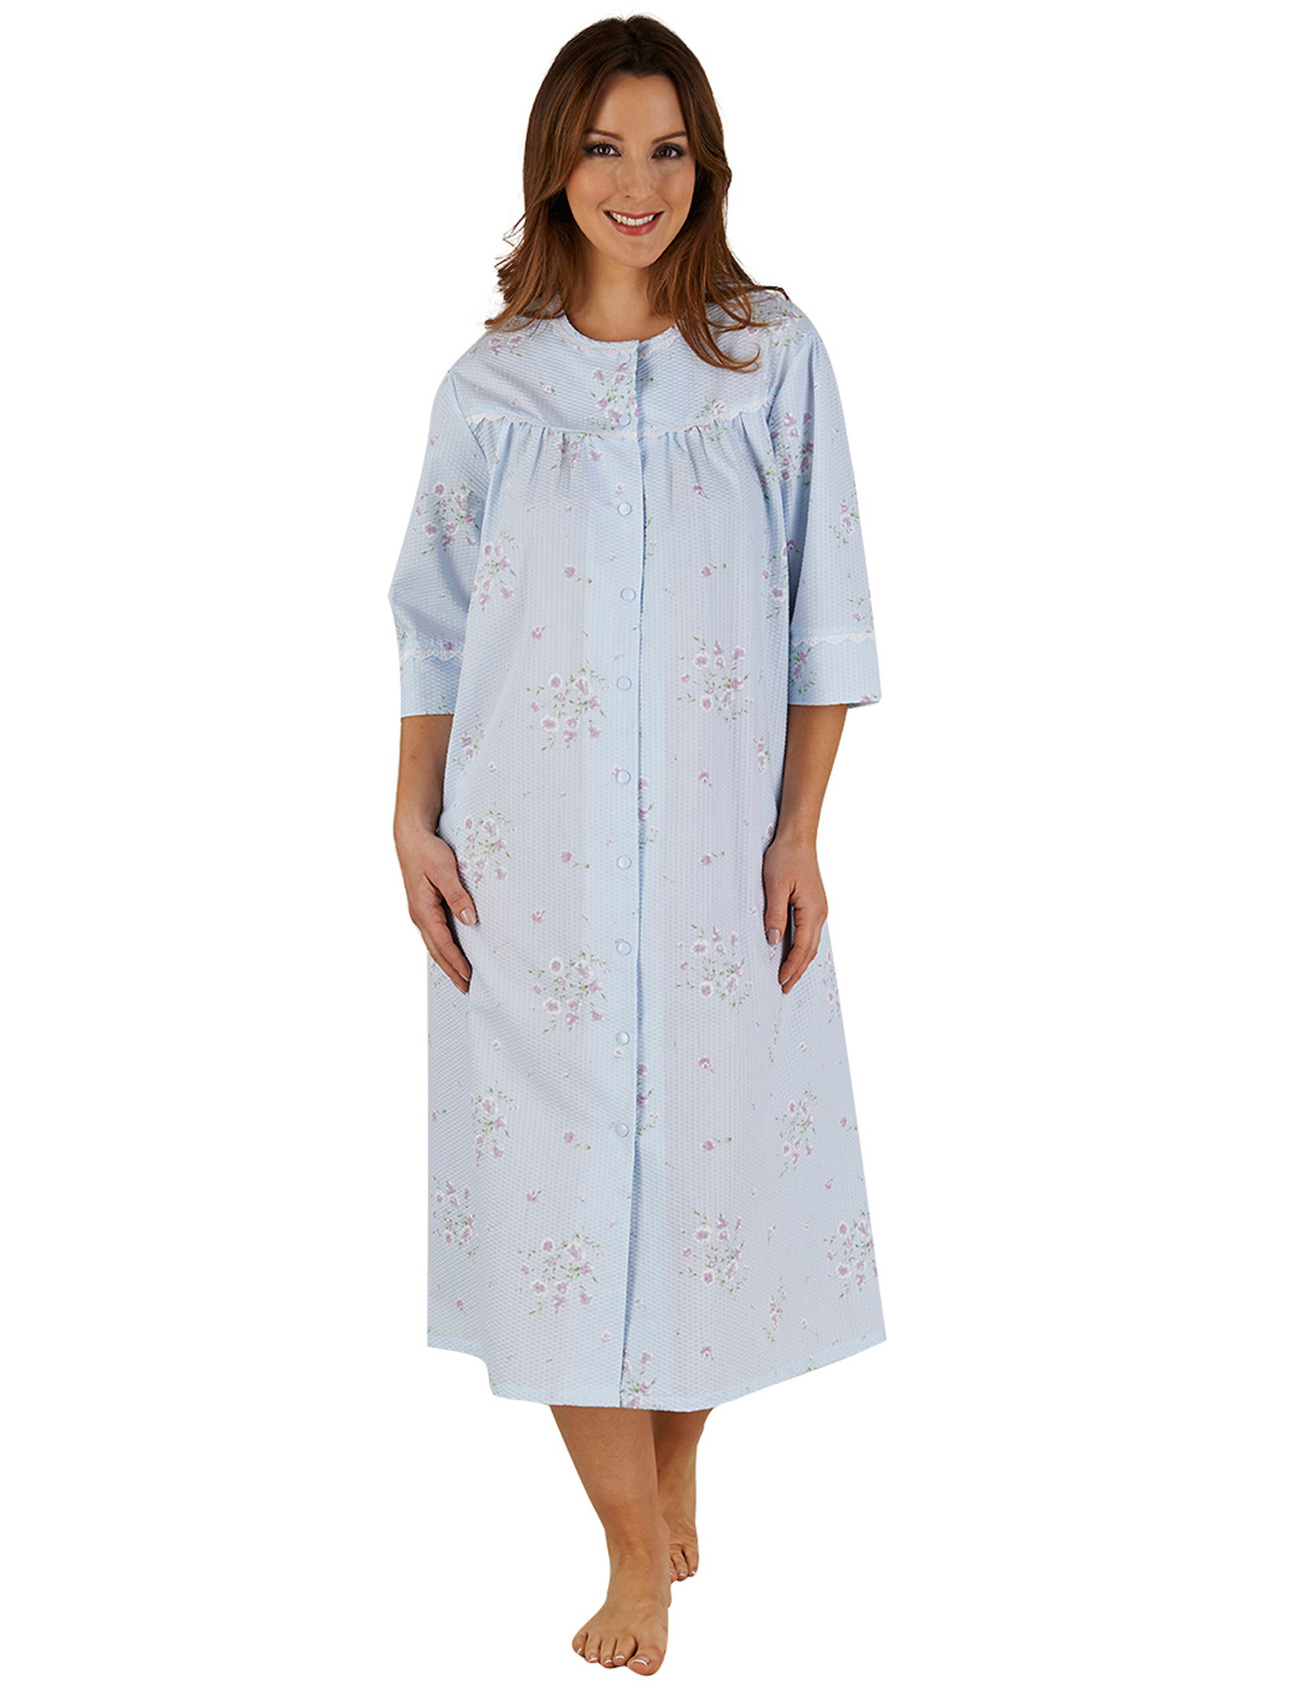 Womens Bathrobe Button Poppers Floral Seersucker Ladies 3 4 Sleeve Dressing  Gown 50fc8d978